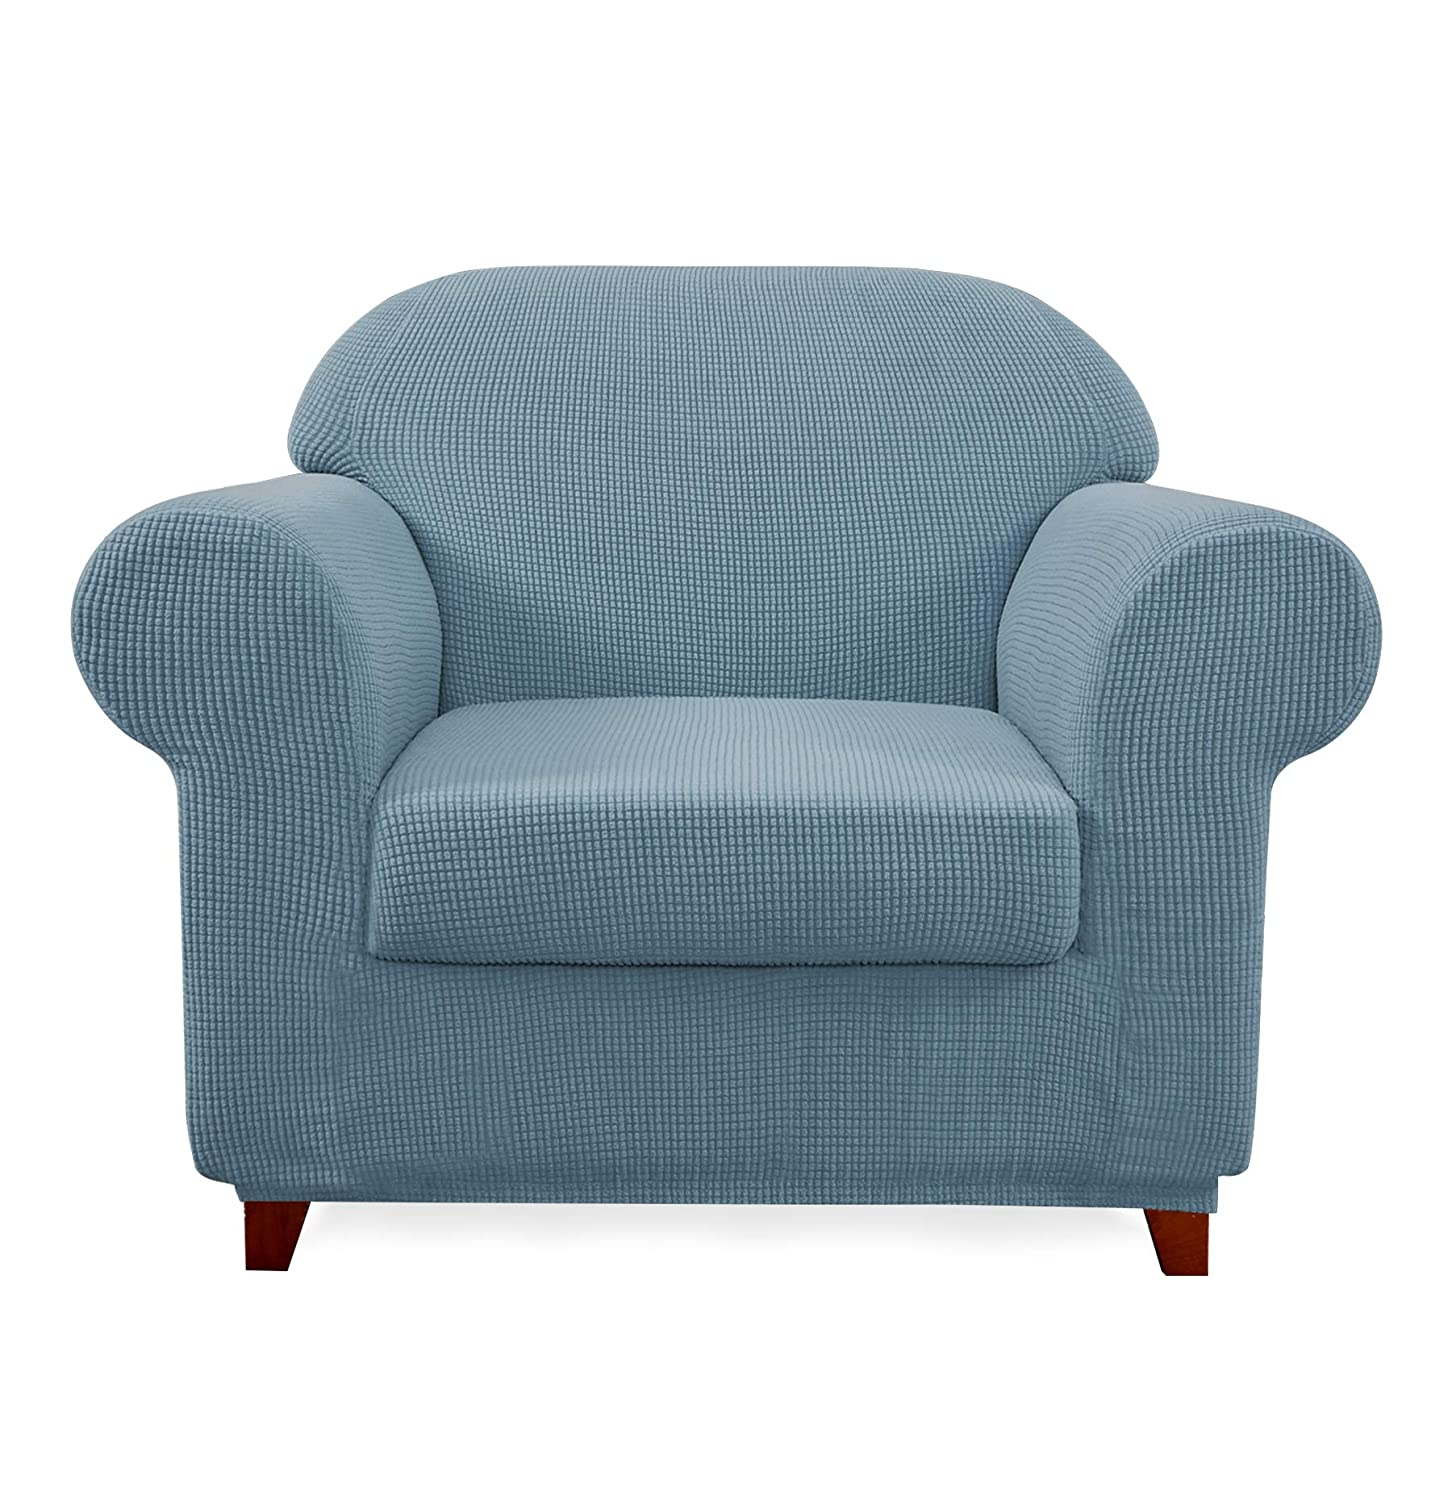 Subrtex 2-Piece Jacquard High Stretch Armchair Slipcover Furniture Protector for Sofa Spandex Washable 1 Seater Cushion Couch Settee Cover Coat (Chair, Steel Blue),